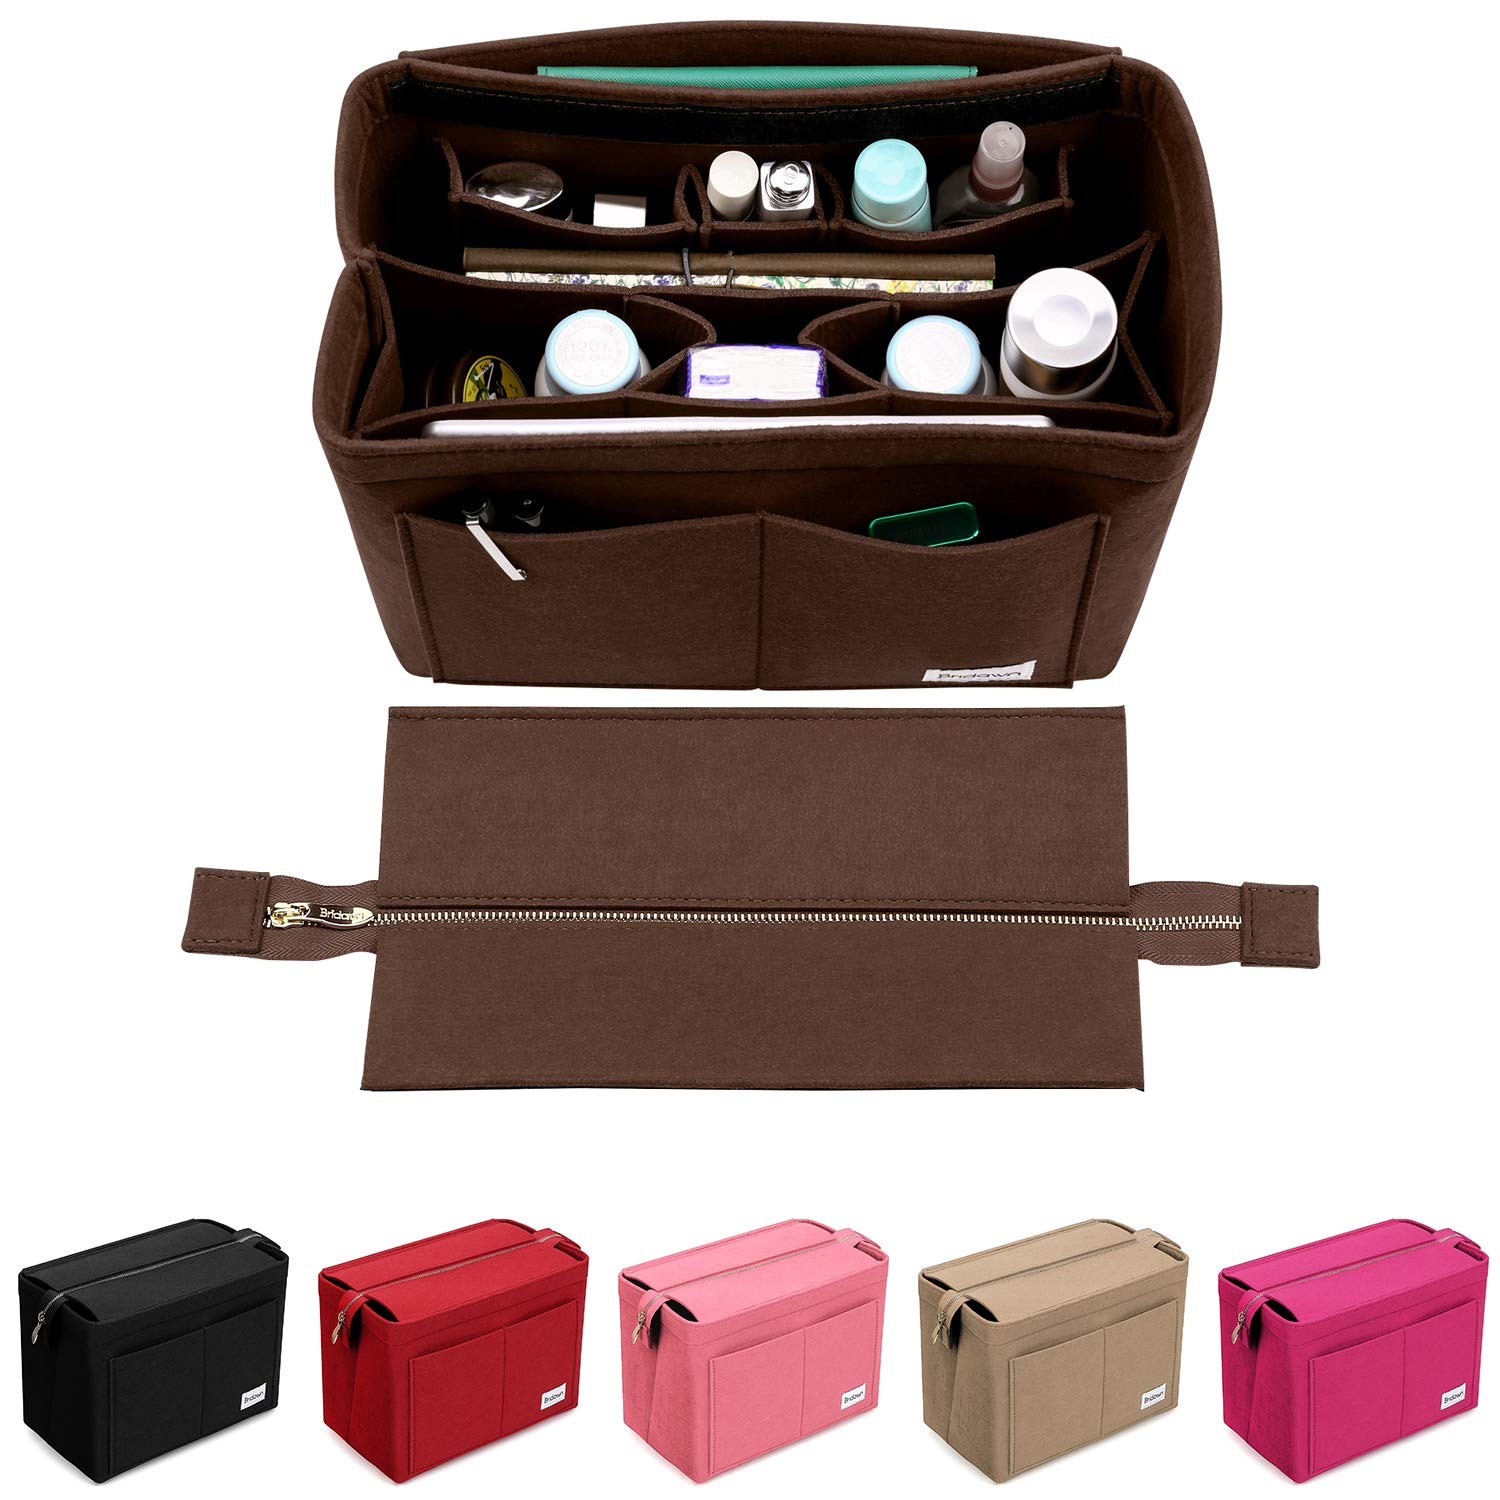 Purse Organizer Insert Bridawn Felt Handbag Organizer Tote shaper with Detachable Zipper Cover